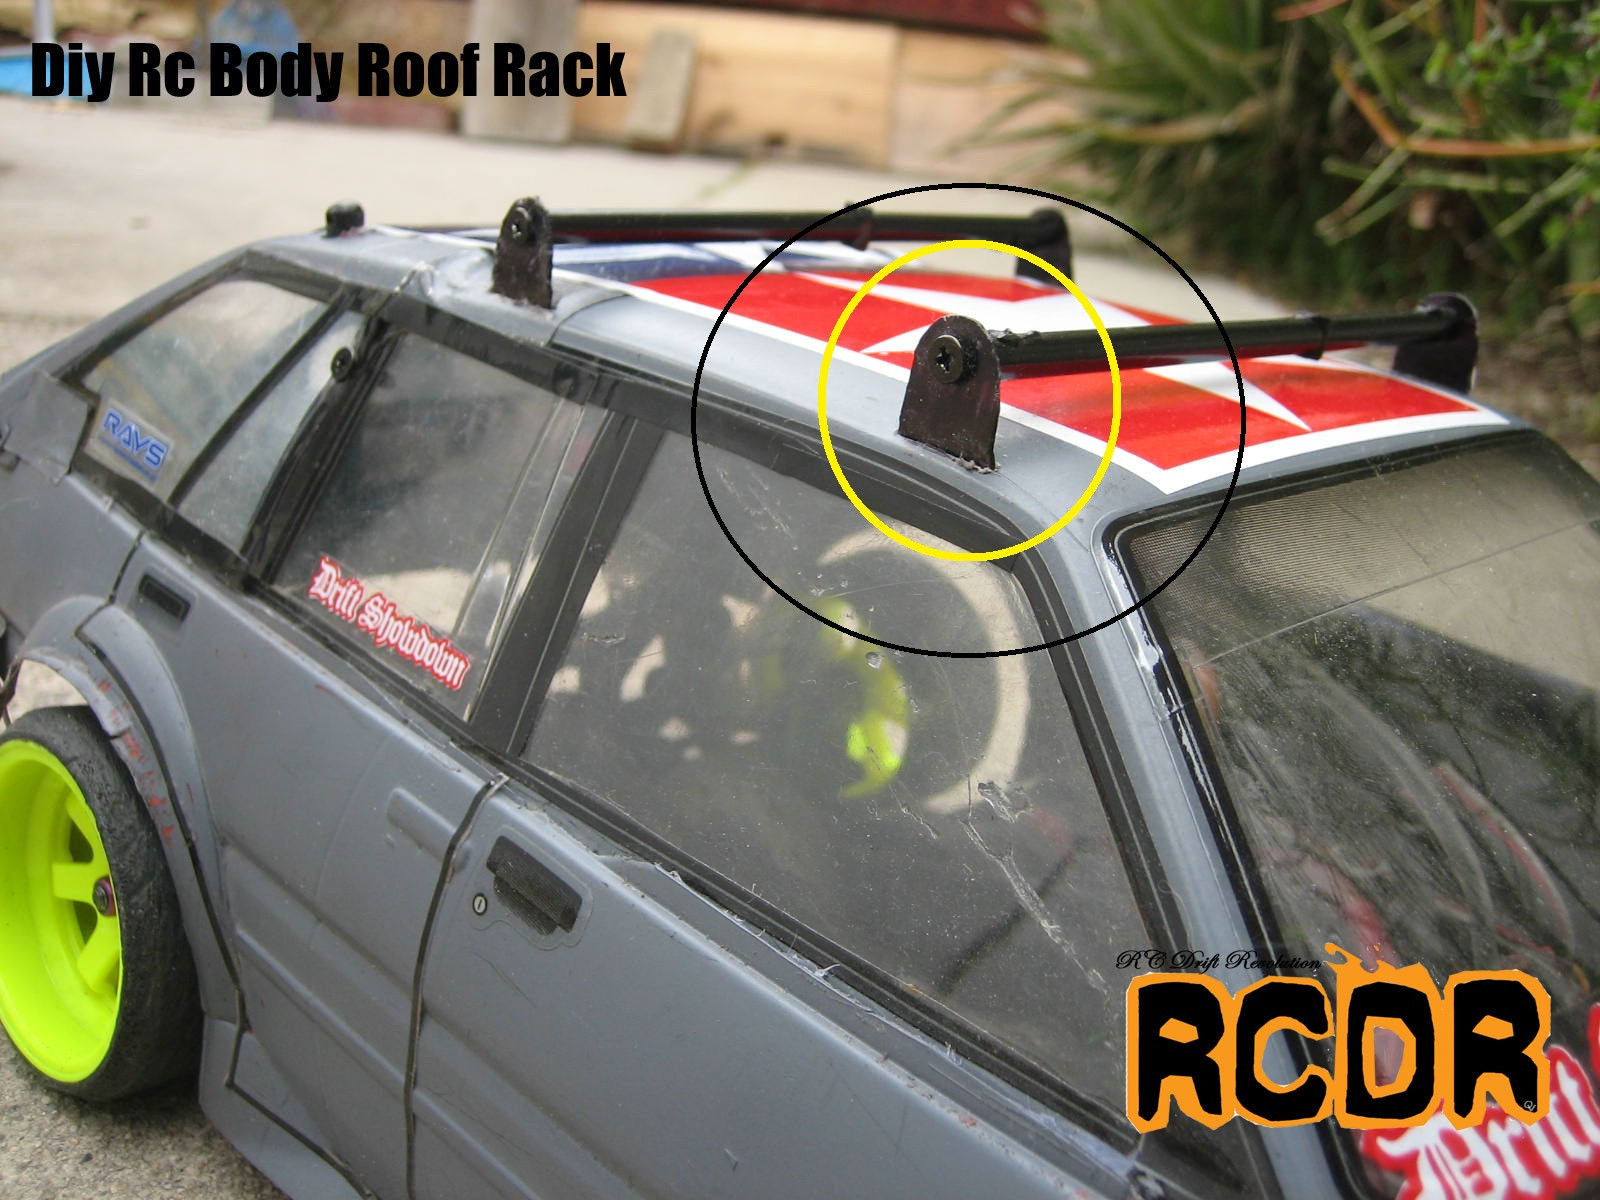 DIY Roof Rack  Rc Drift Revolution Project Diy Rc Body Roof Rack